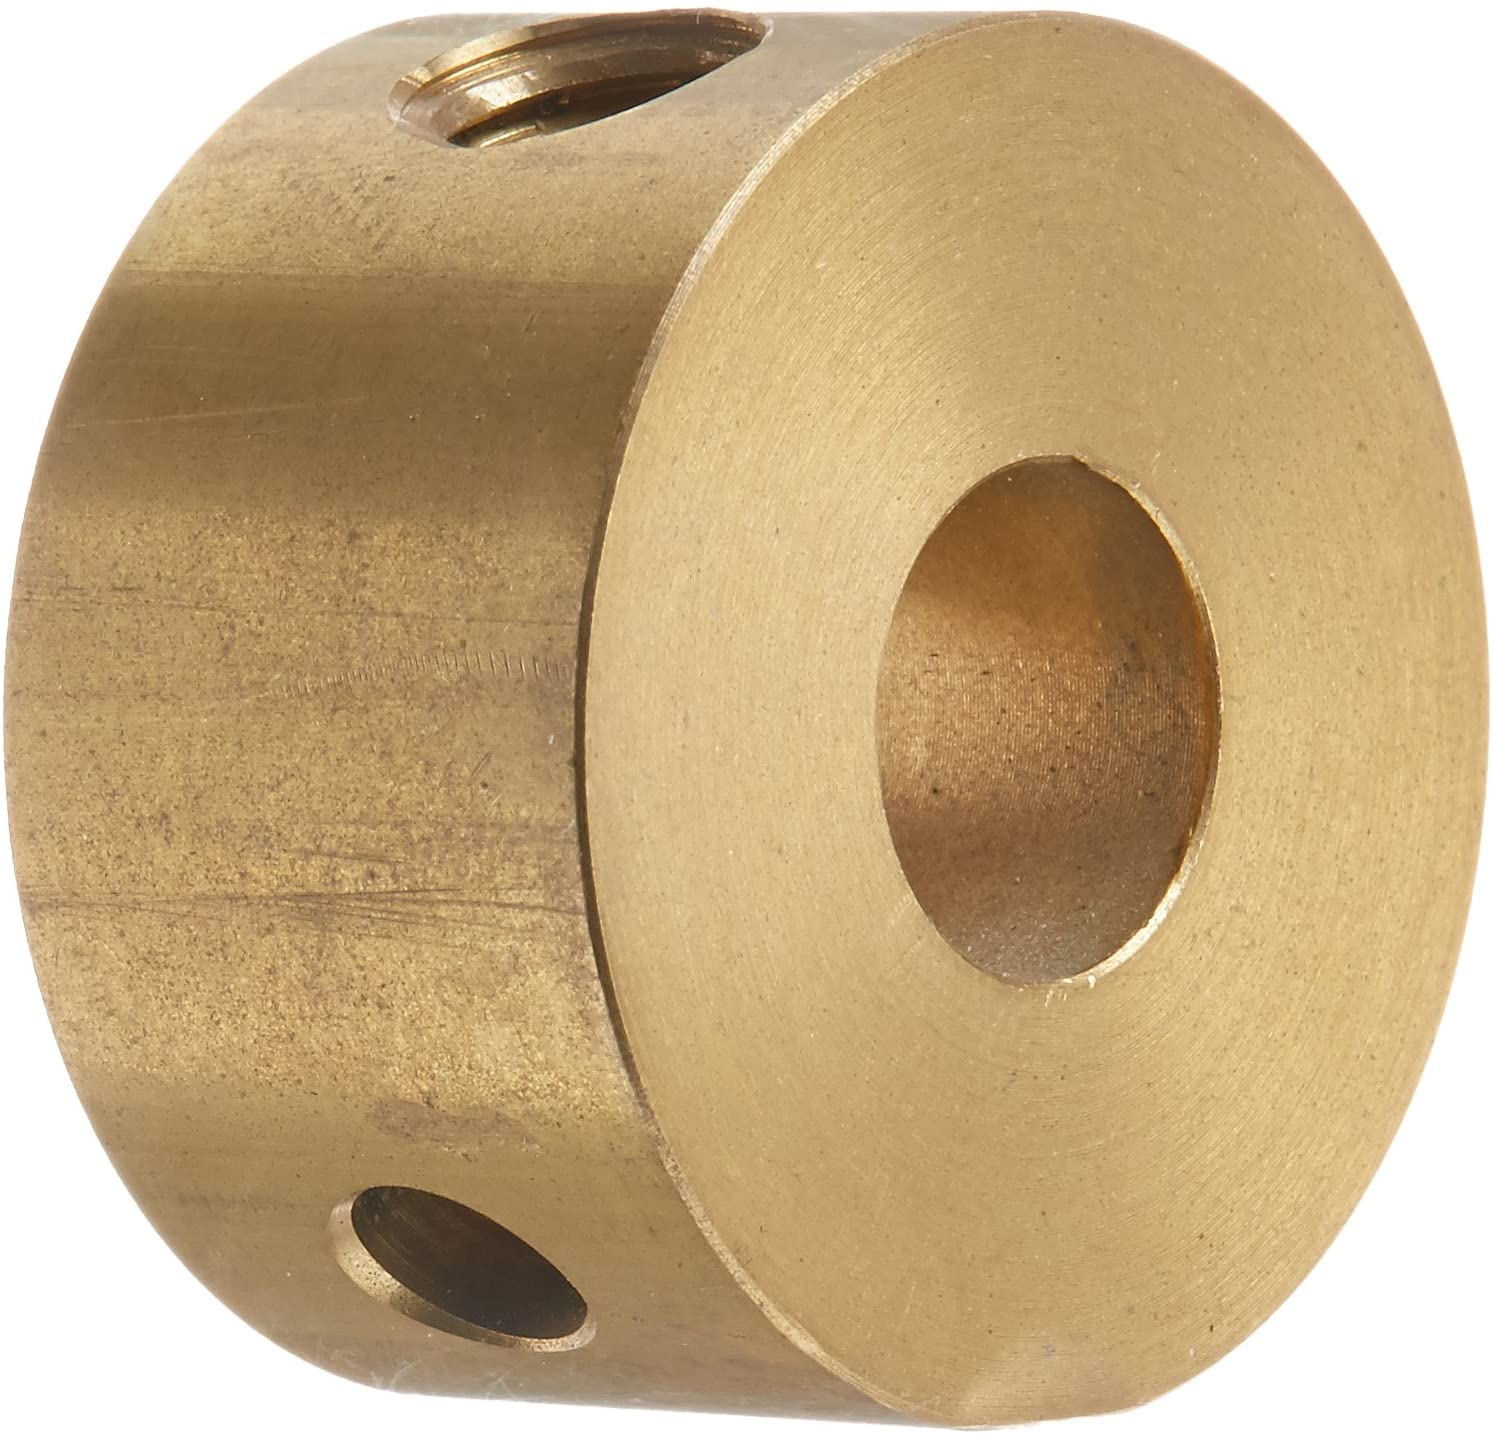 Pentair 13600-0023 BRS CLEVIS 1/2-Inch HOLE